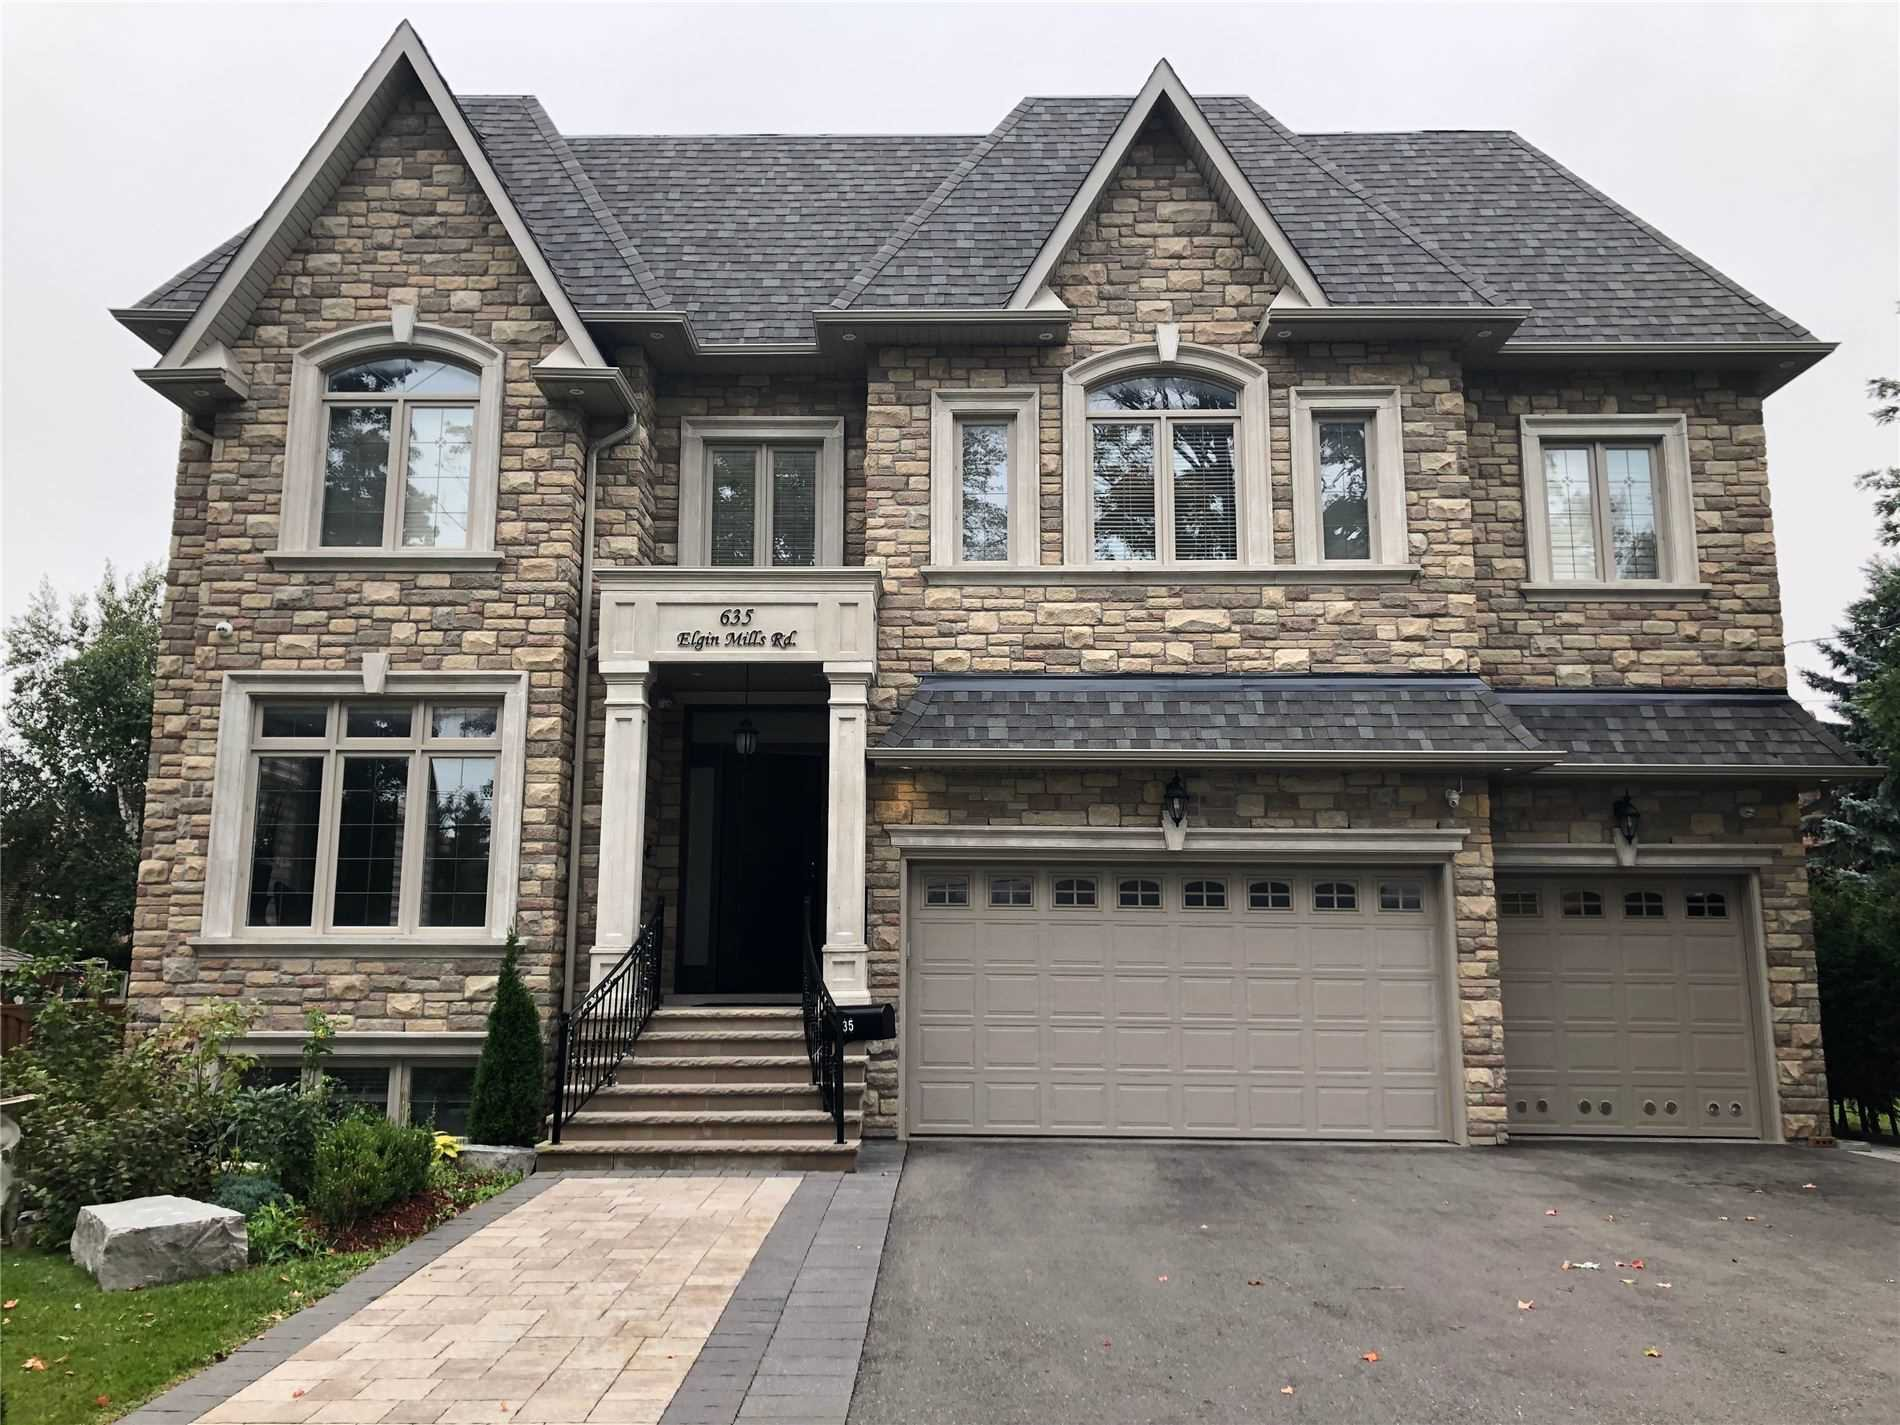 Main Photo: 635 Elgin Mills Rd W in Richmond Hill: Mill Pond Freehold for sale : MLS®# N4905400